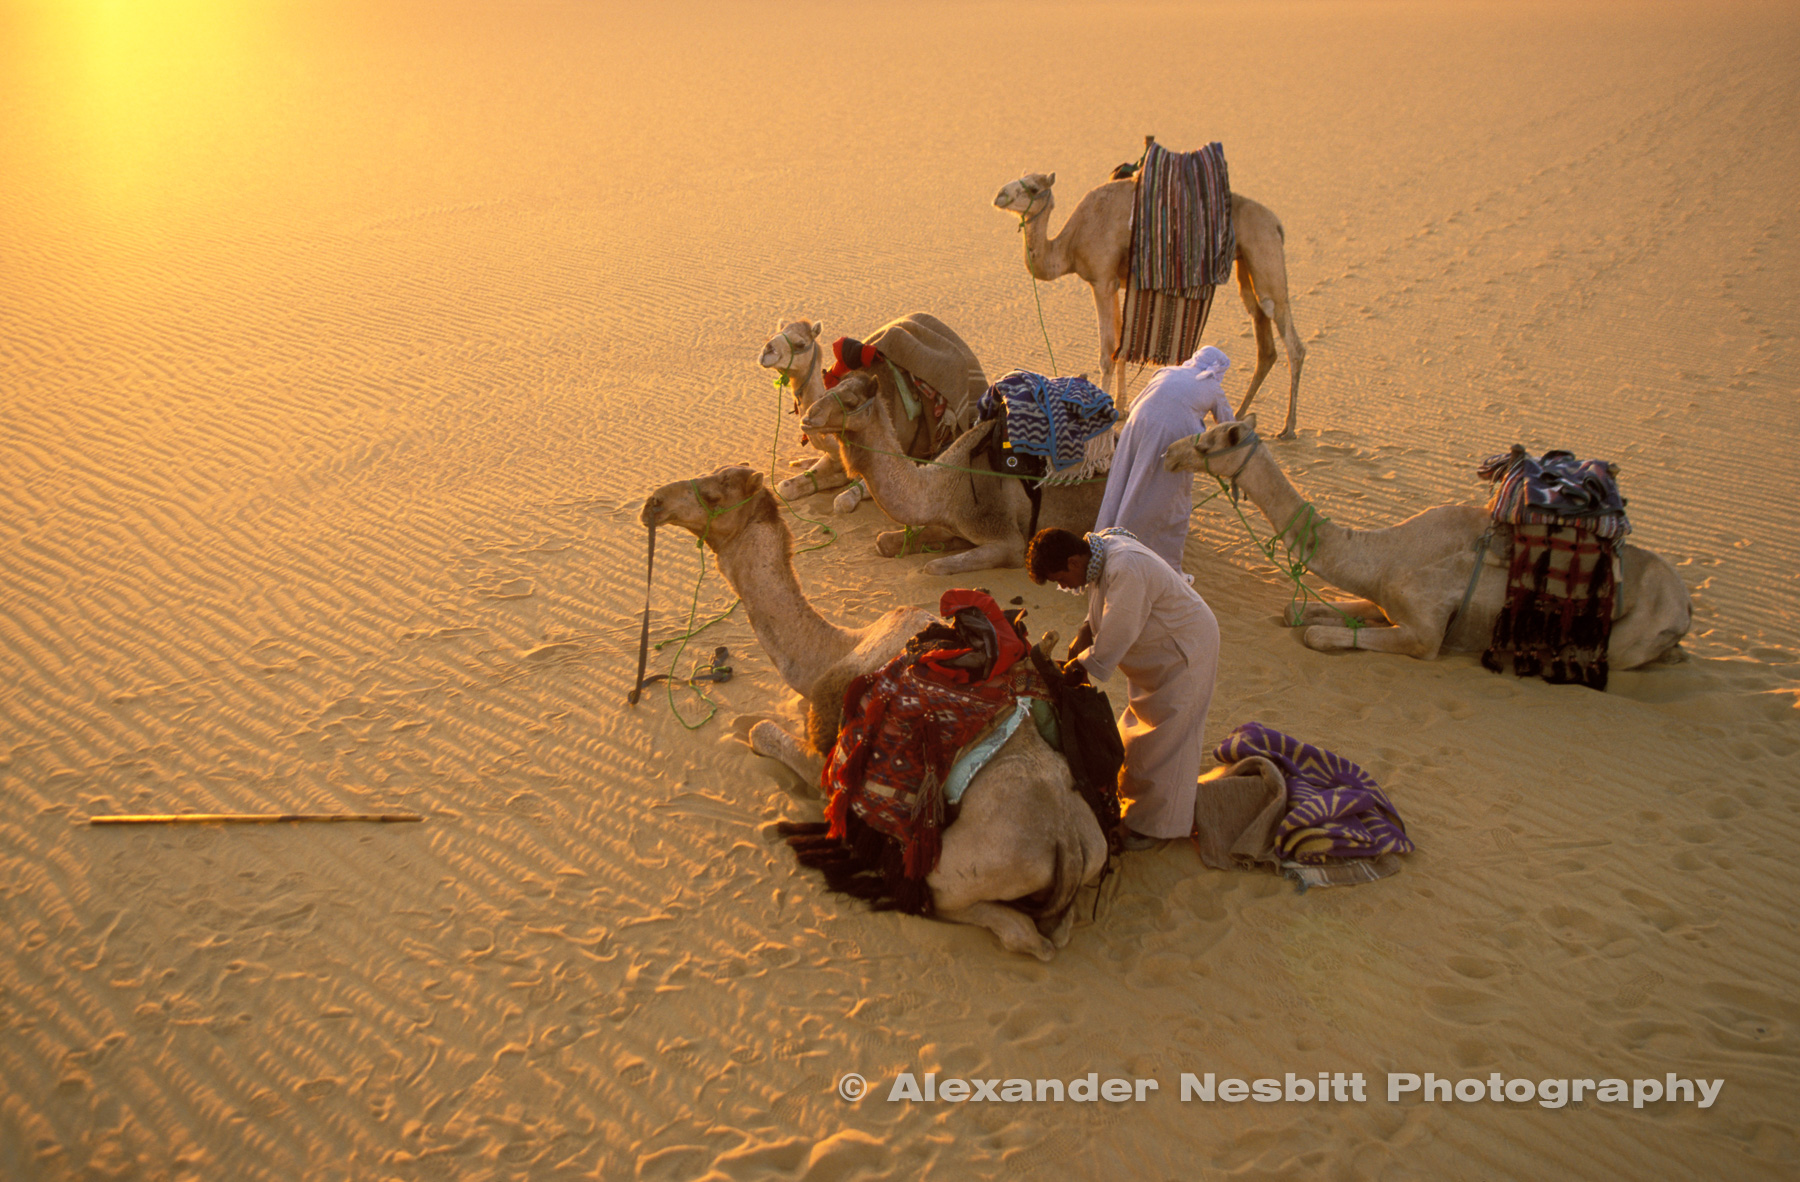 Bedouin guides unpack supplies from exhausted camels, camel trek, Egyptian Western desert.